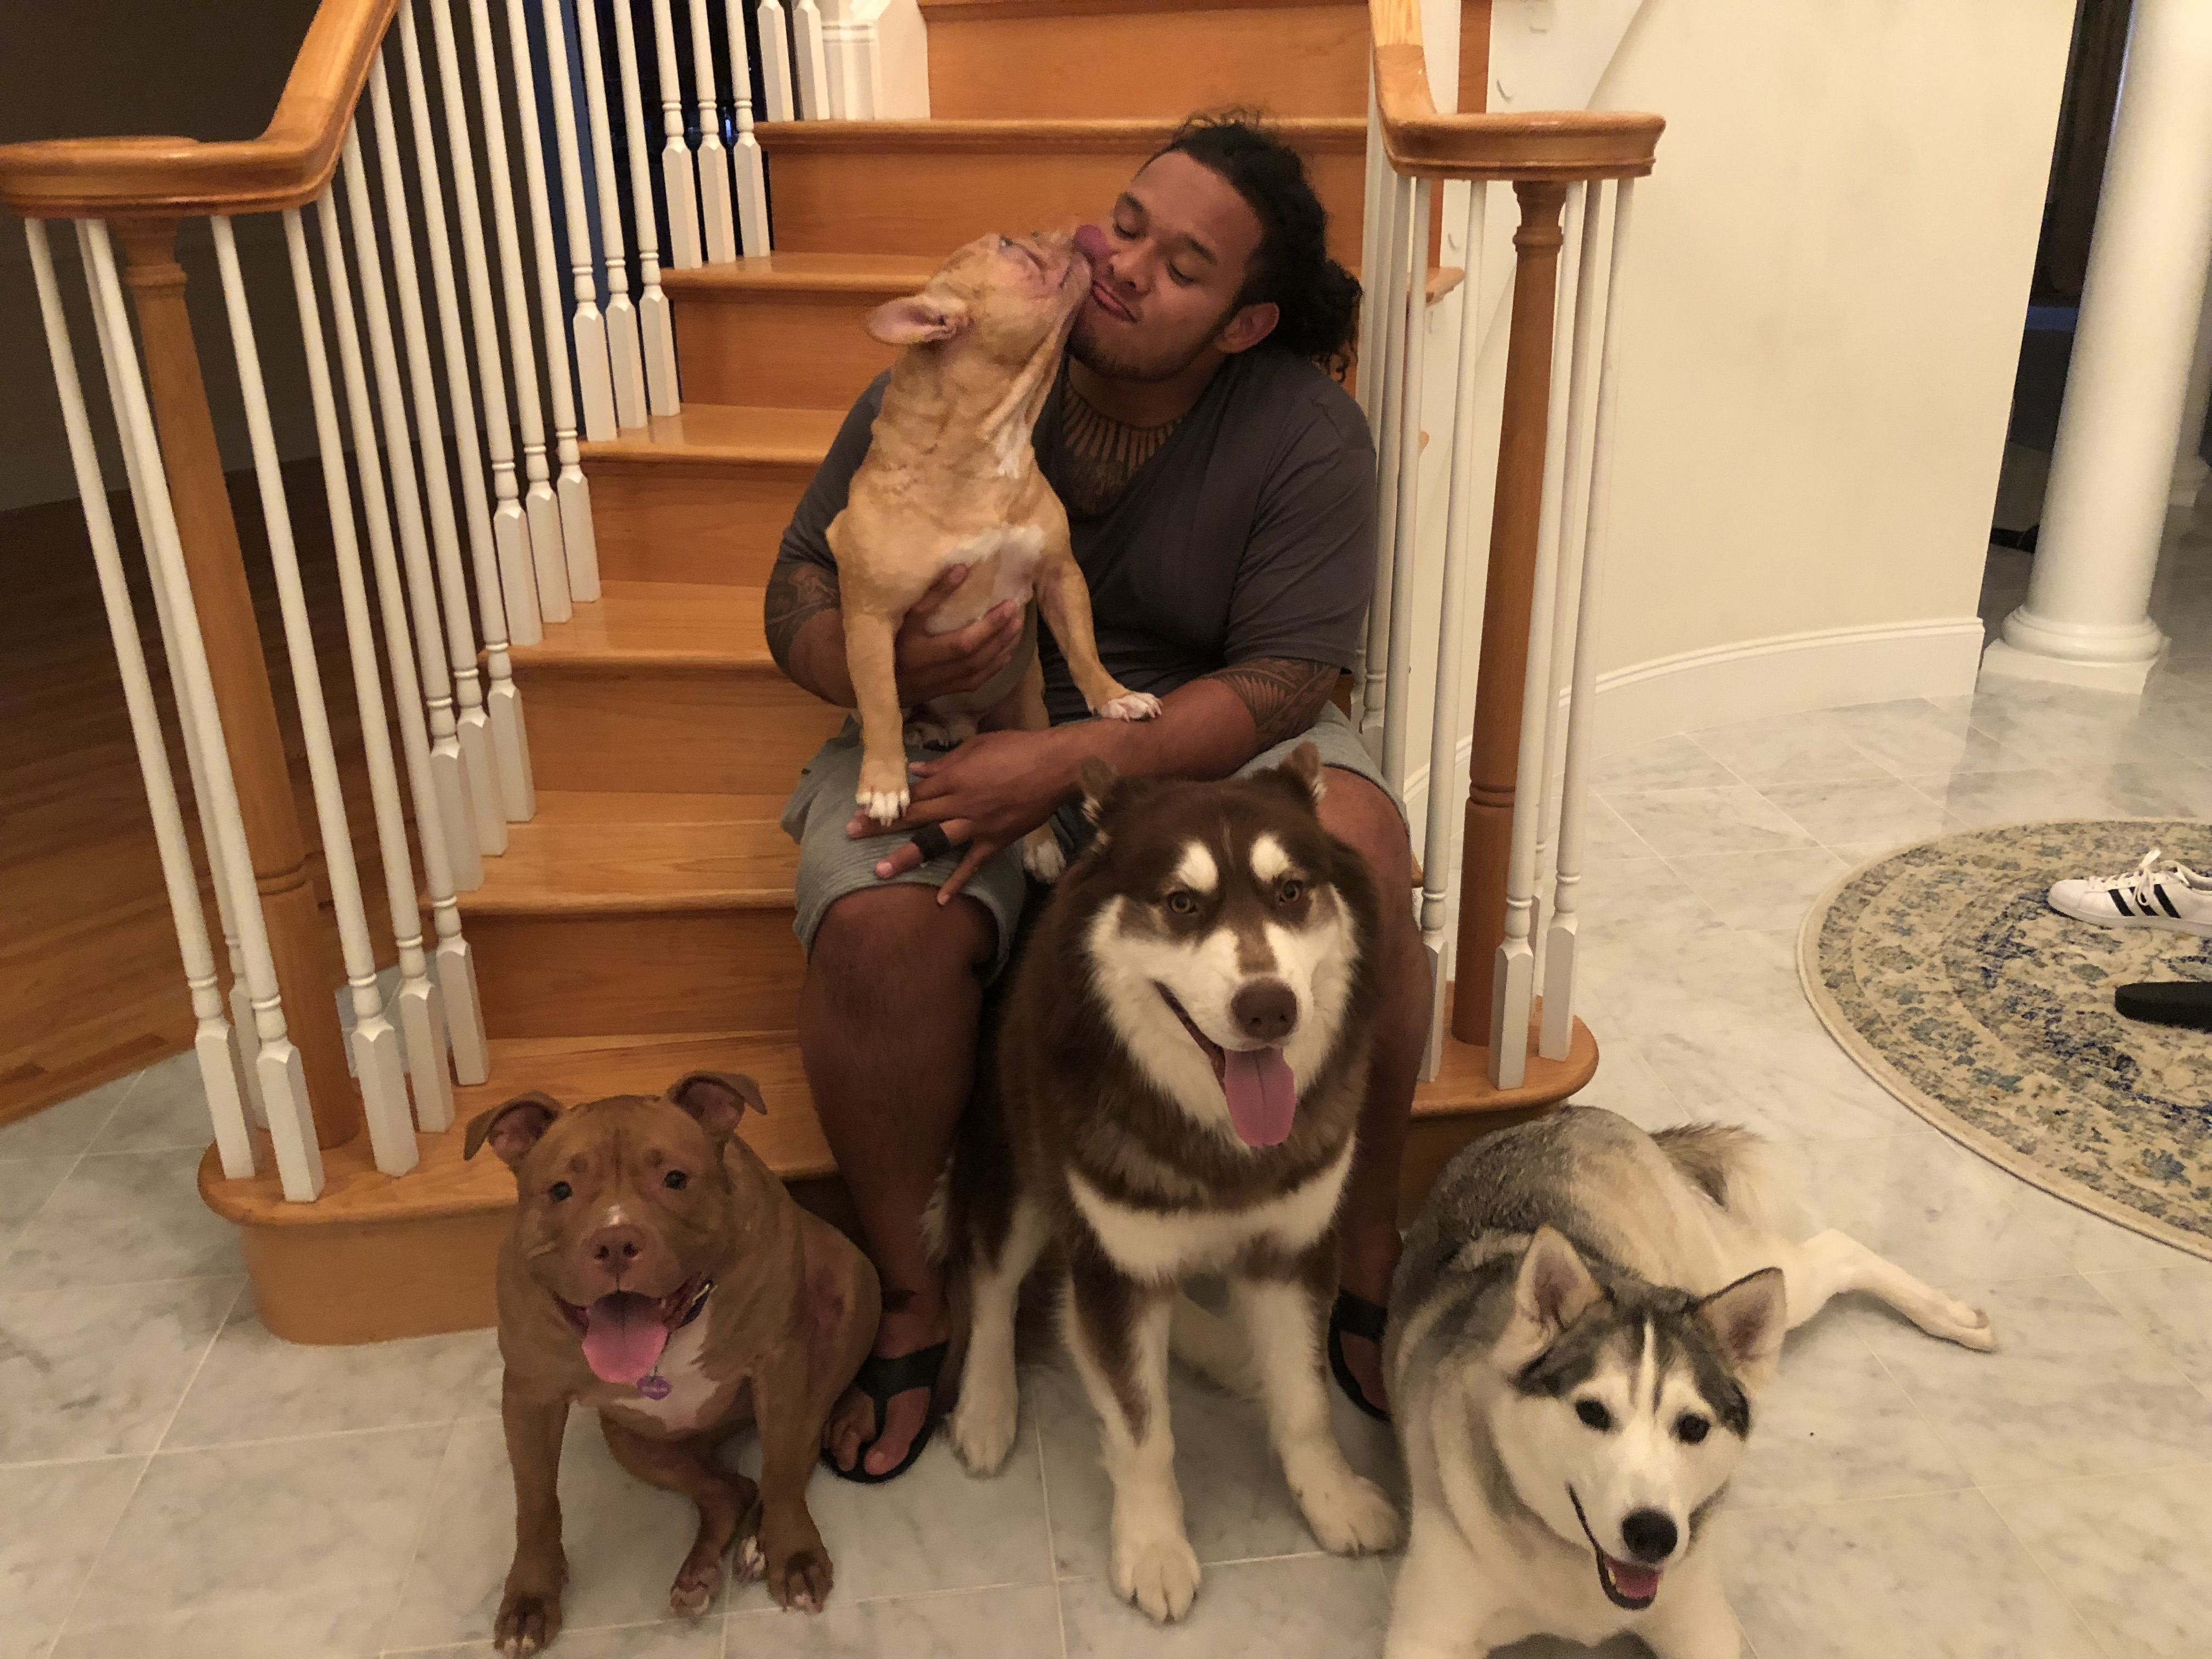 ba0393ef36b Growing furry family is a game-changer for this Patriot - The Boston Globe